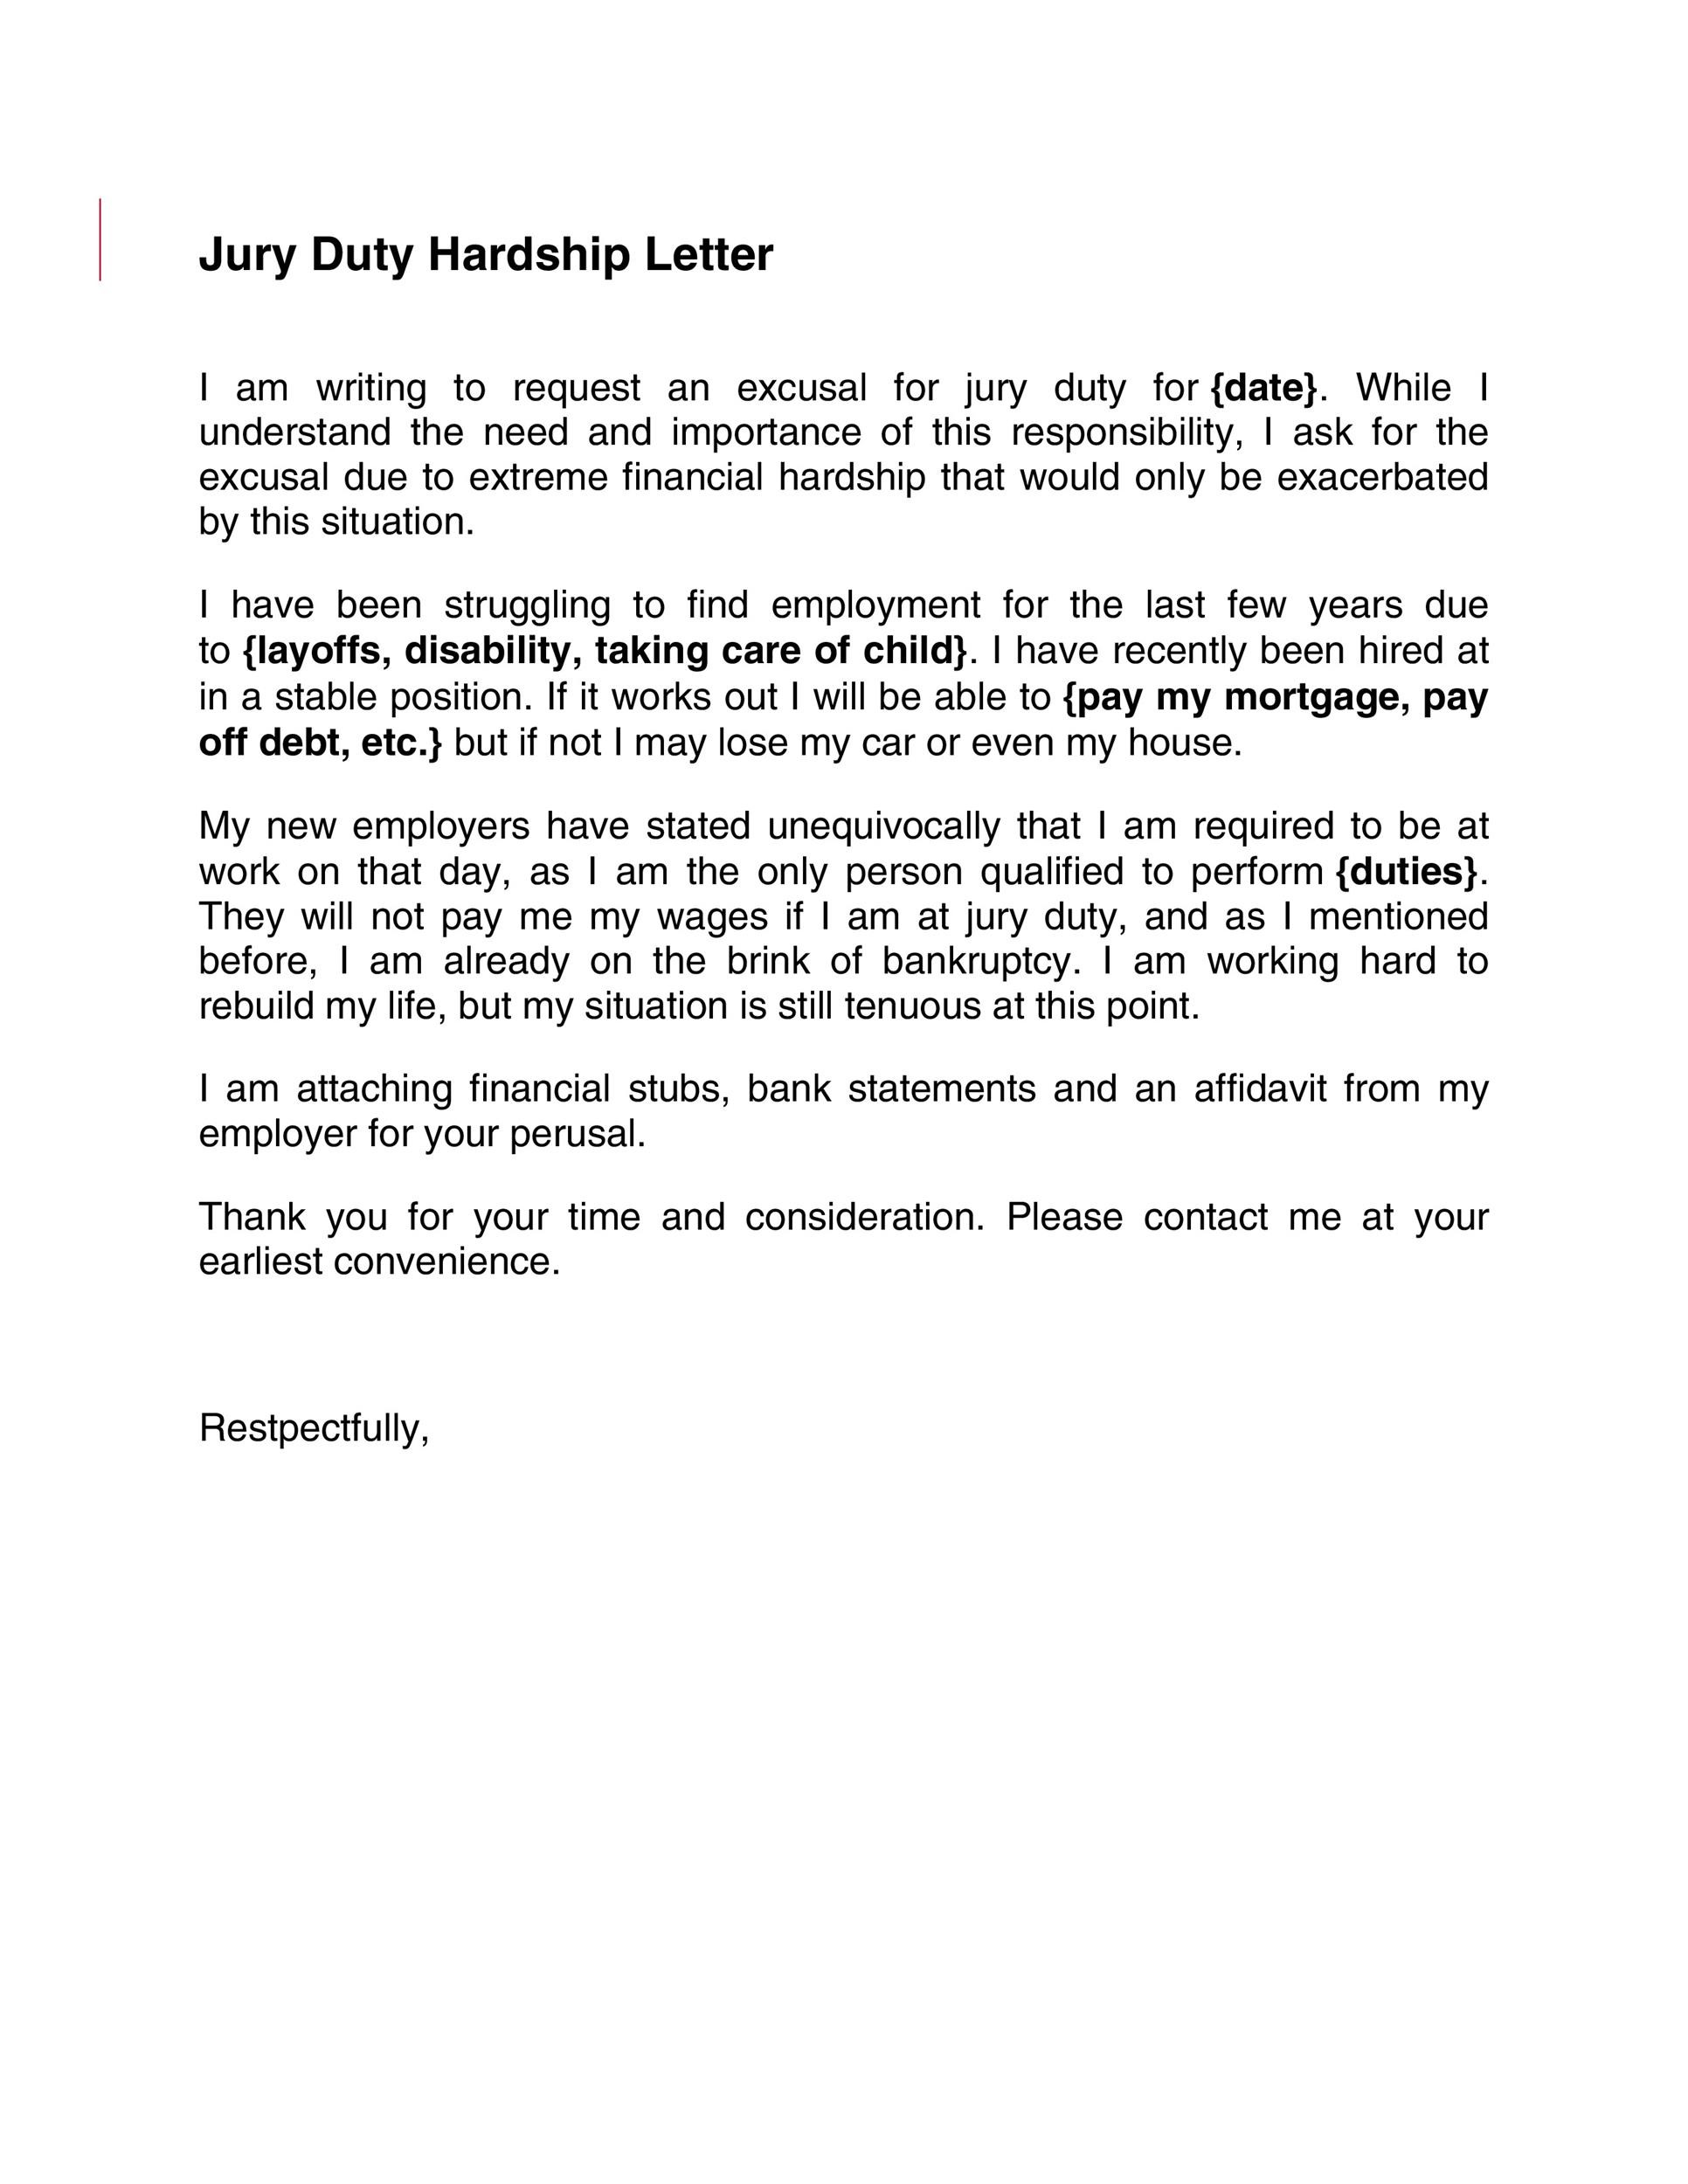 33 Best Jury Duty Excuse Letters [+Tips] ᐅ Template Lab